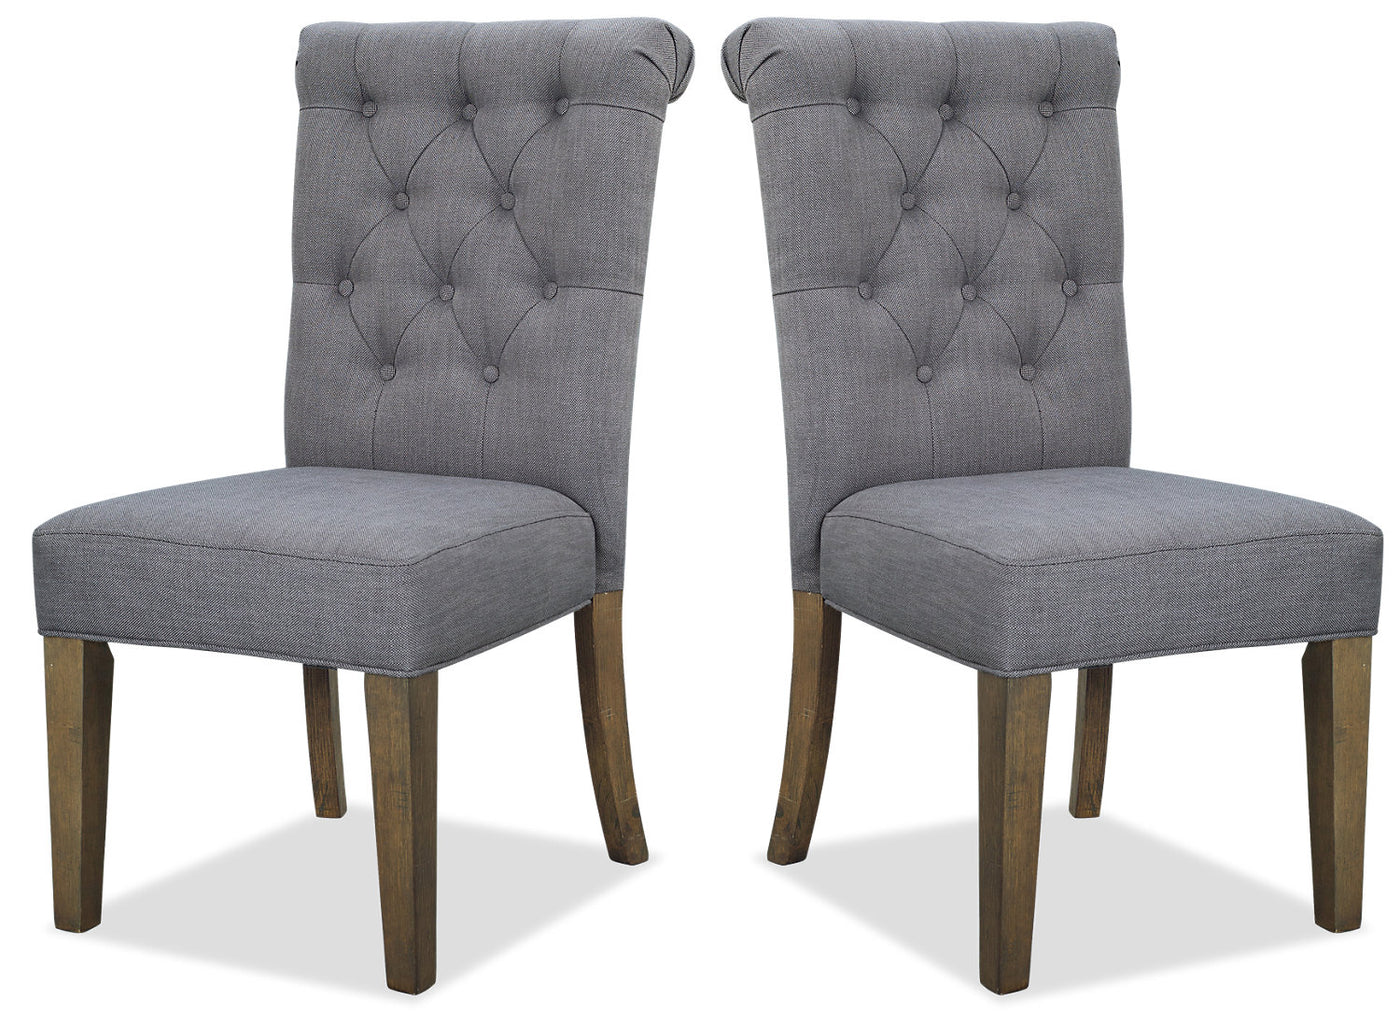 Surprising Ayla Accent Chair Set Of 2 Grey Pdpeps Interior Chair Design Pdpepsorg